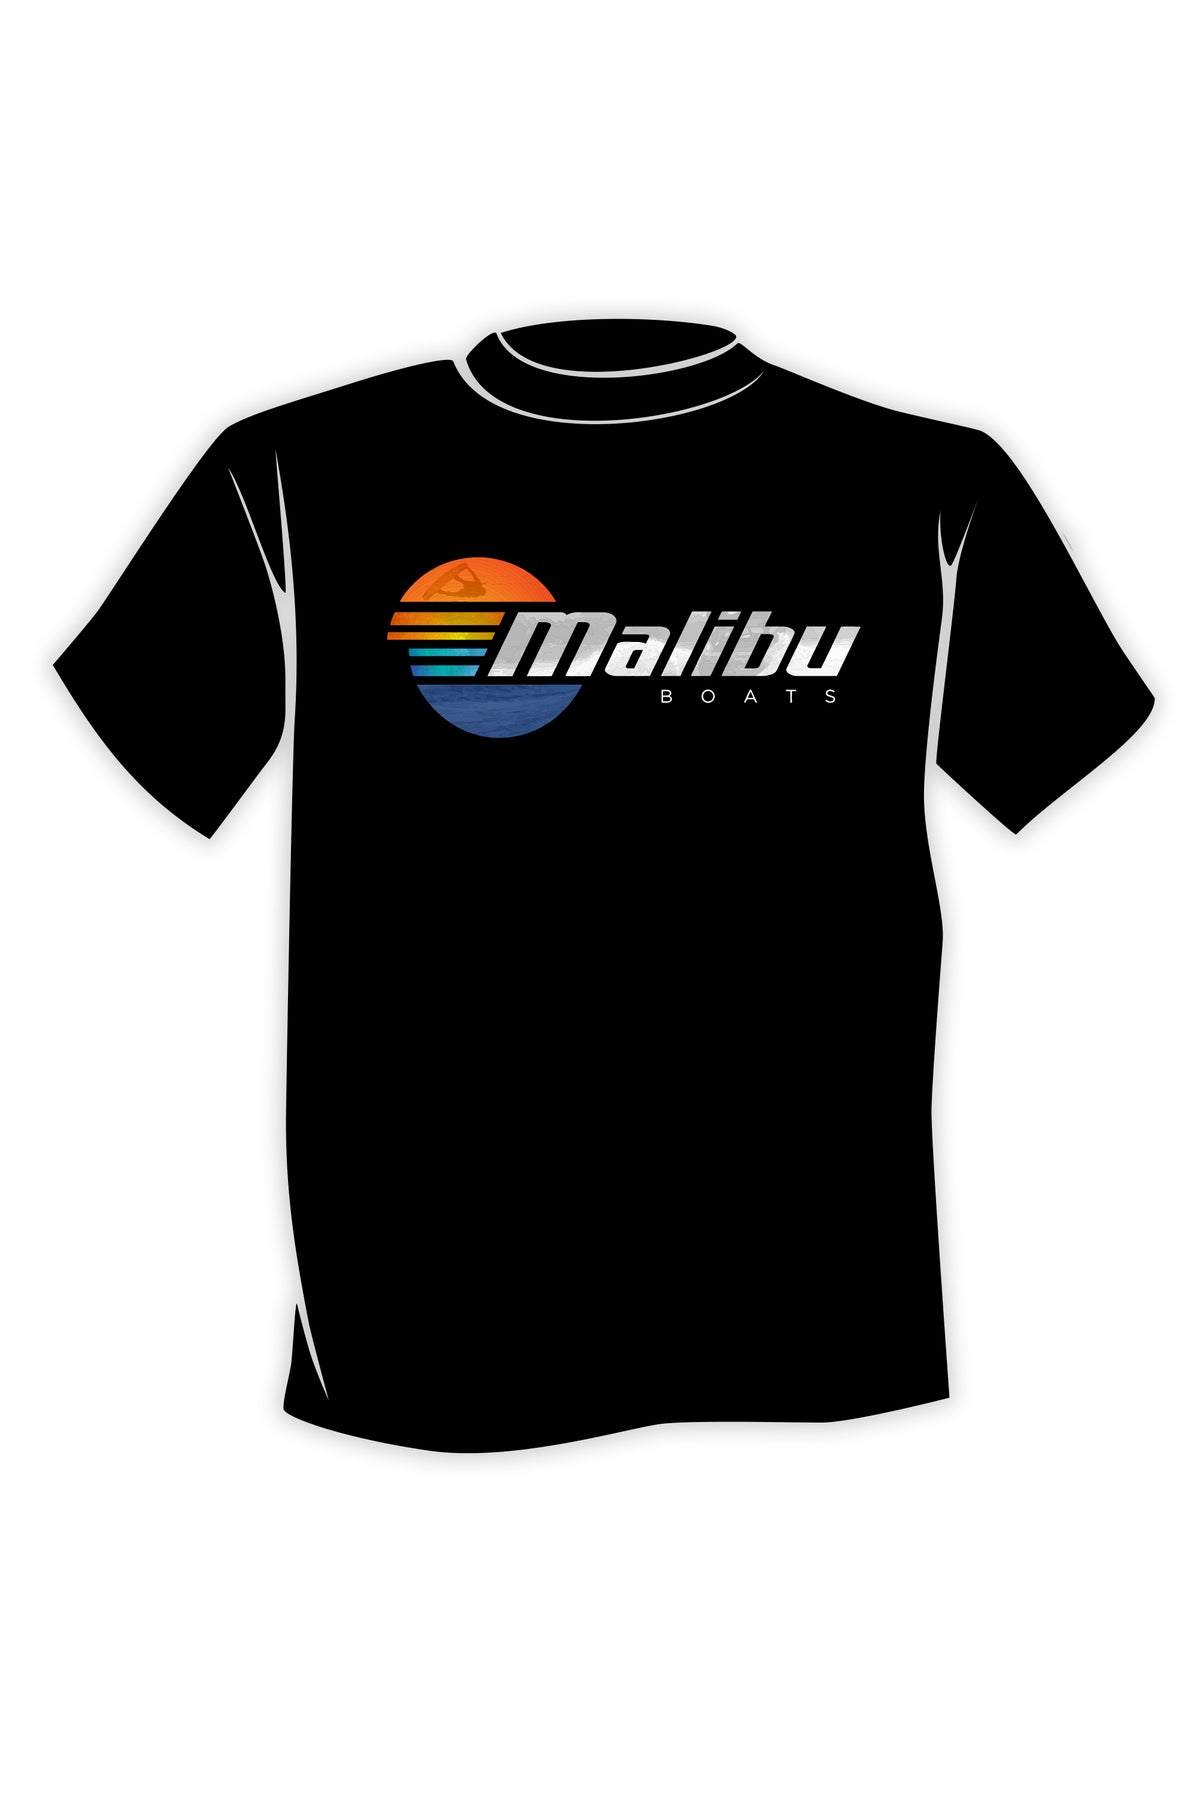 Image of Malibu Unisex T-Shirt - Water Print